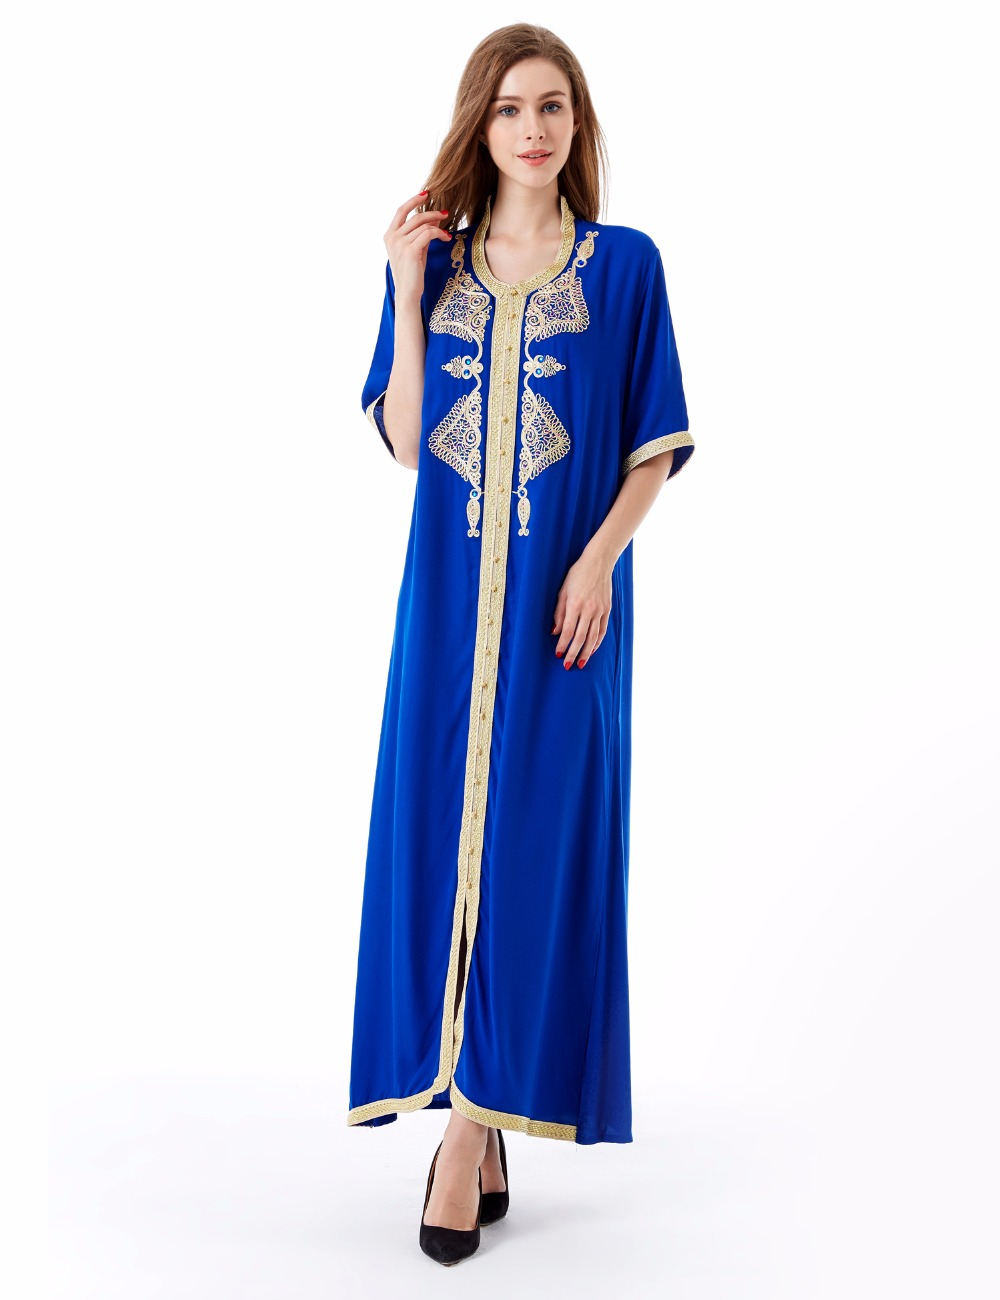 Women s Maxi Long sleeve long Dress moroccan Kaftan Caftan Jilbab font b Islamic b font